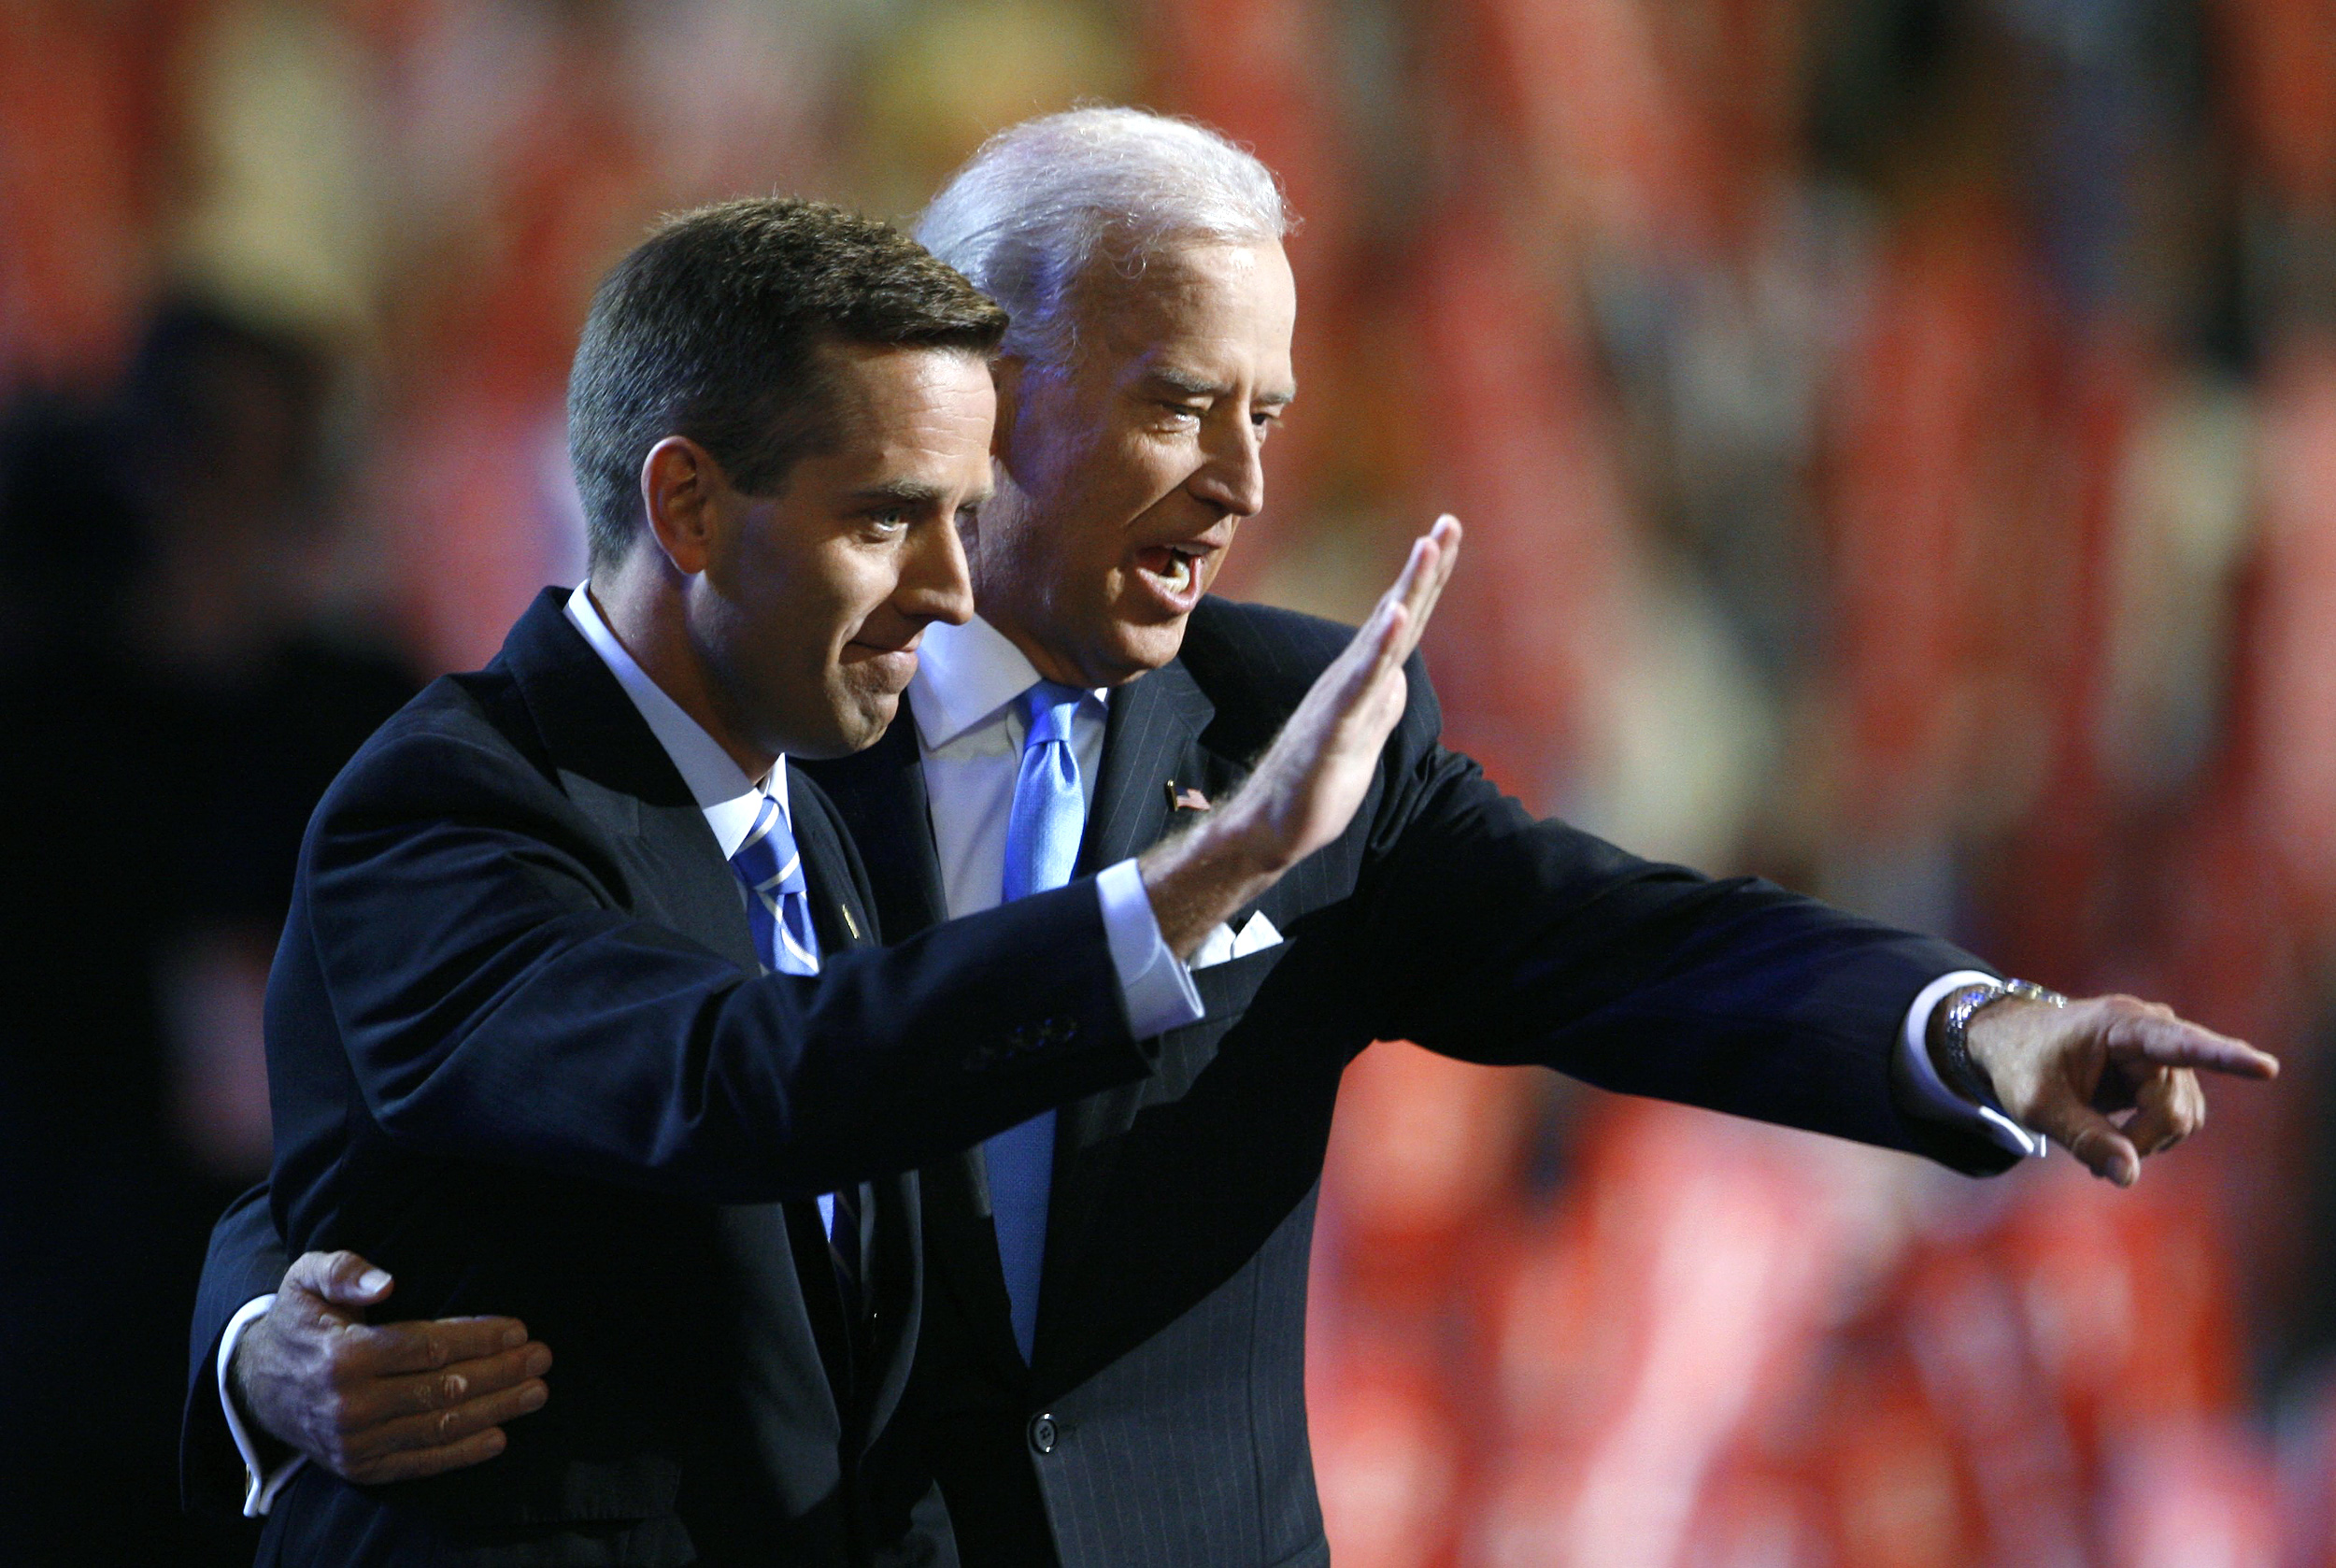 Beau Biden with then Vice Presidential candidate Senator Joe Biden on stage at the 2008 Democratic National Convention in Denver, Colo. August 27, 2008.